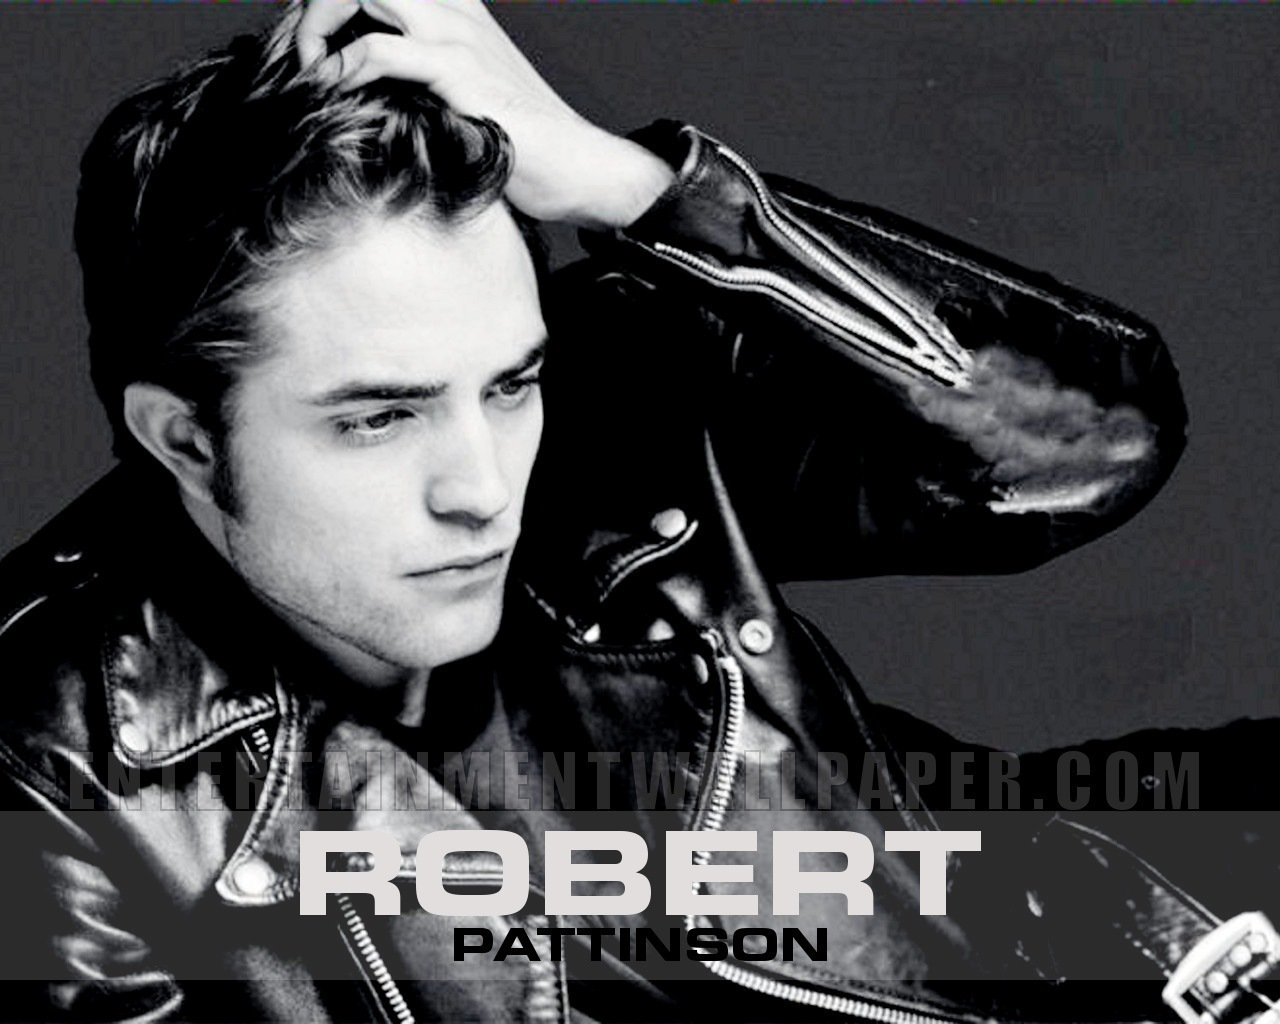 Image search: Boy Model Robbie Images - Frompo